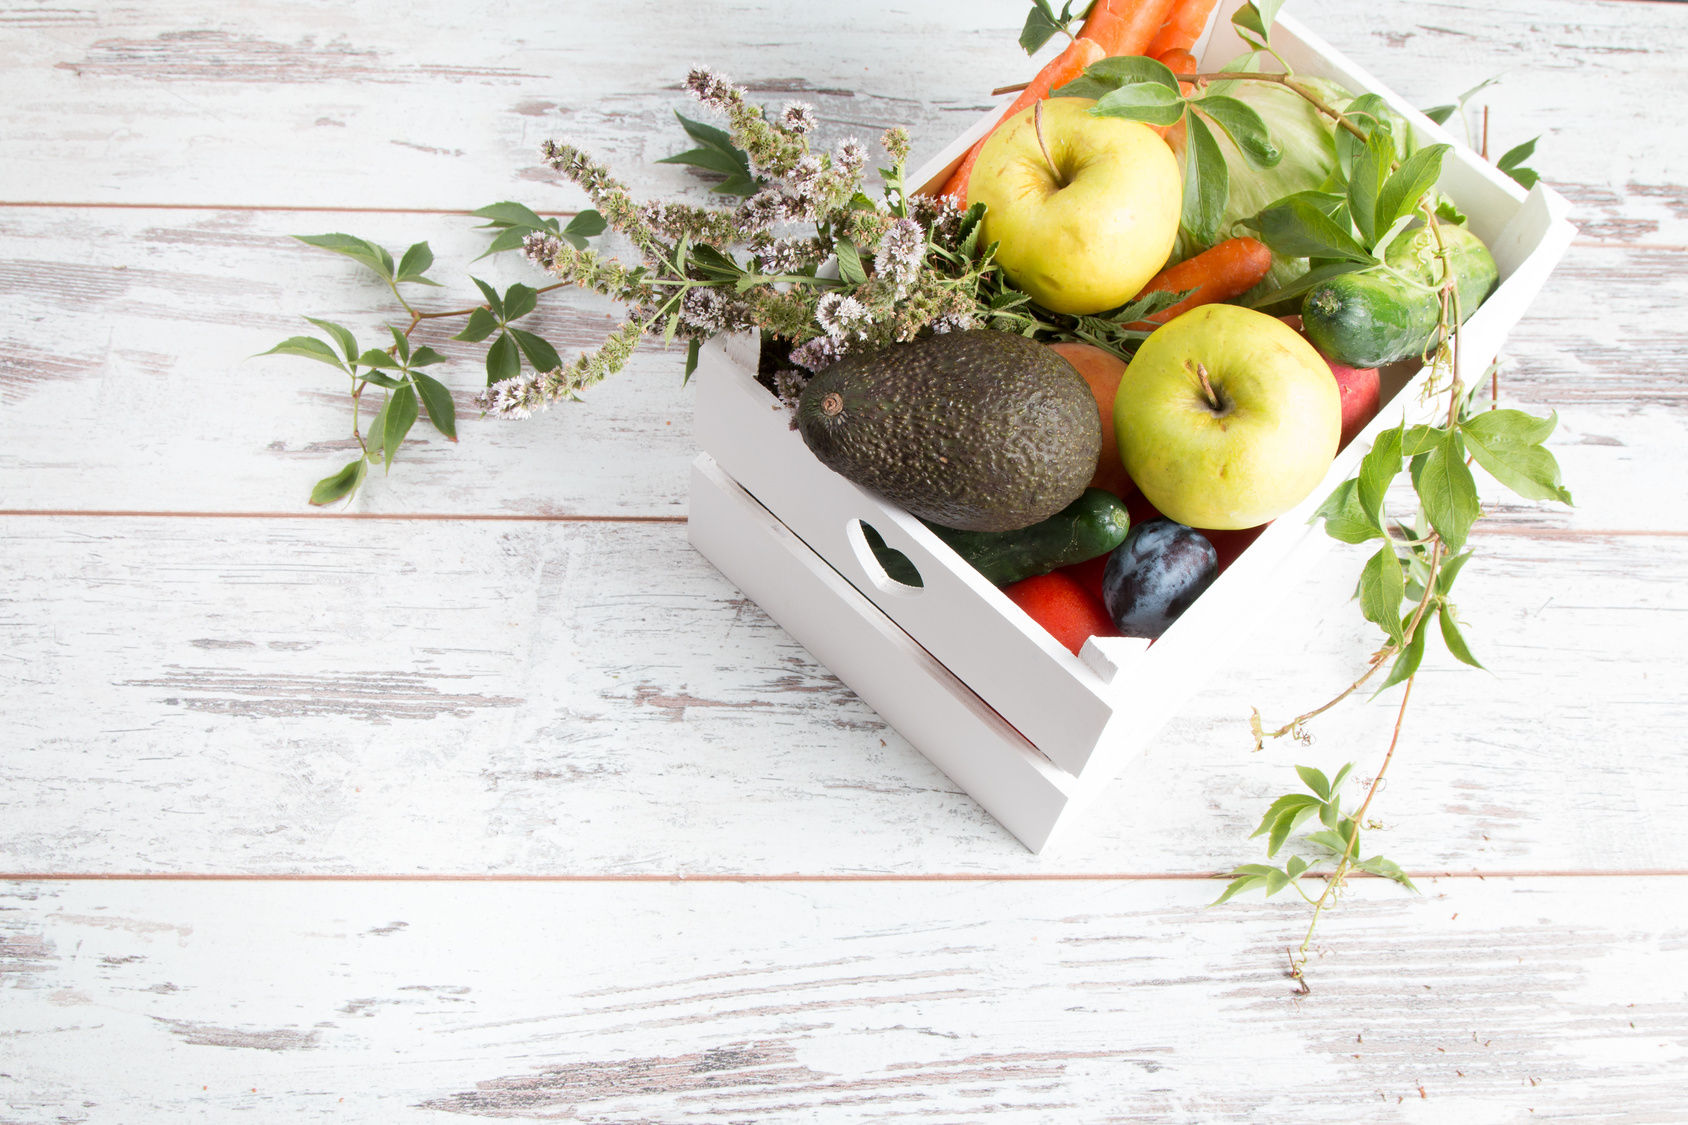 Zero Waste Home, Vegetable And Fruits In White Bag On Wooden Table.